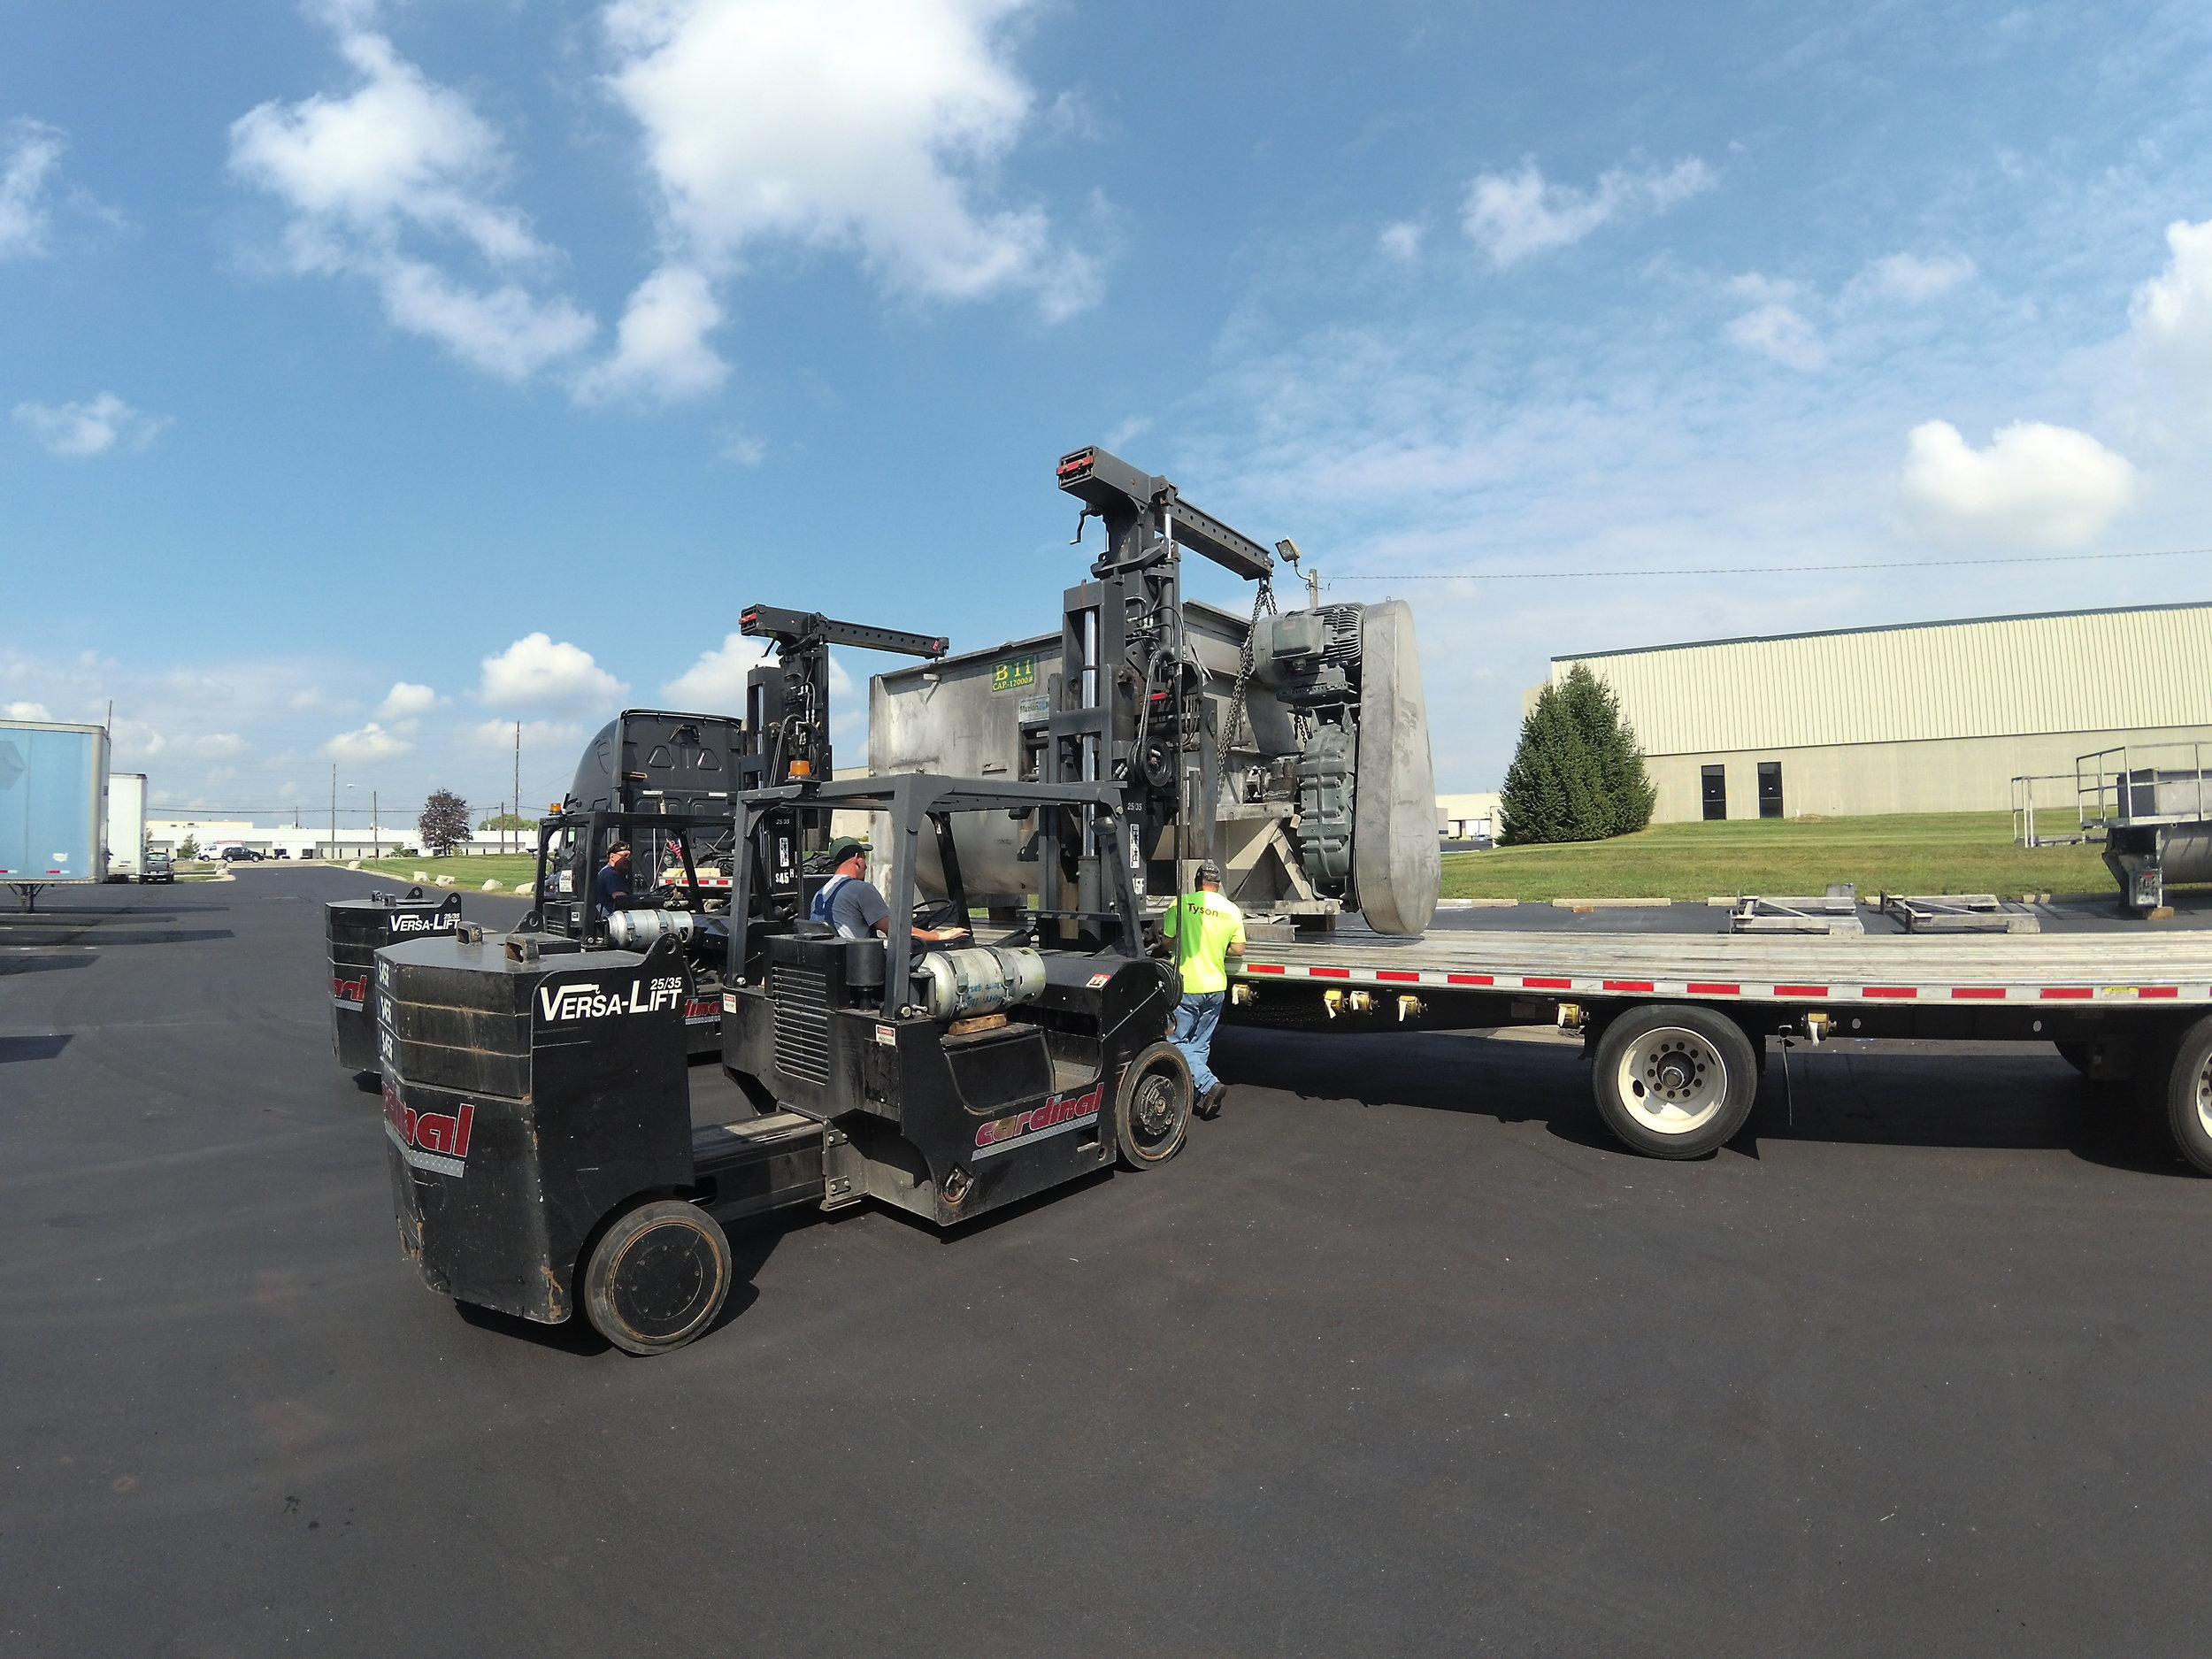 RTP, 9/6/18 - Cardinal helped RTP disassemble and remove two 20,000 lb. mixers in Indianapolis for transport to Wisconsin.